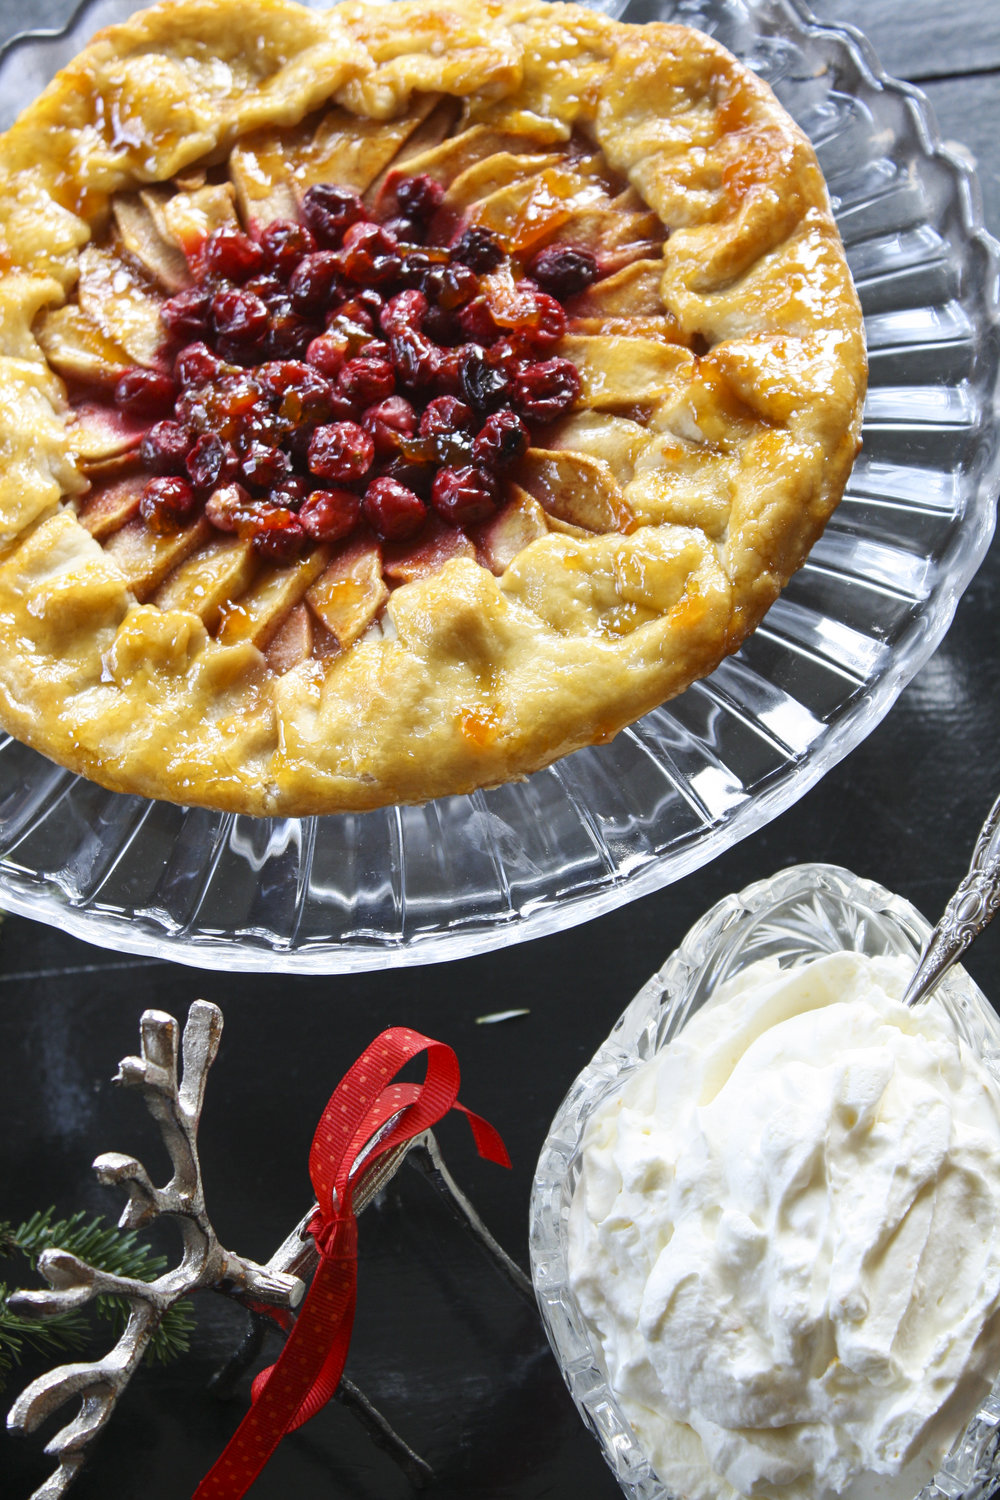 Cranberry-Apple Tart with Orange Whipped Cream